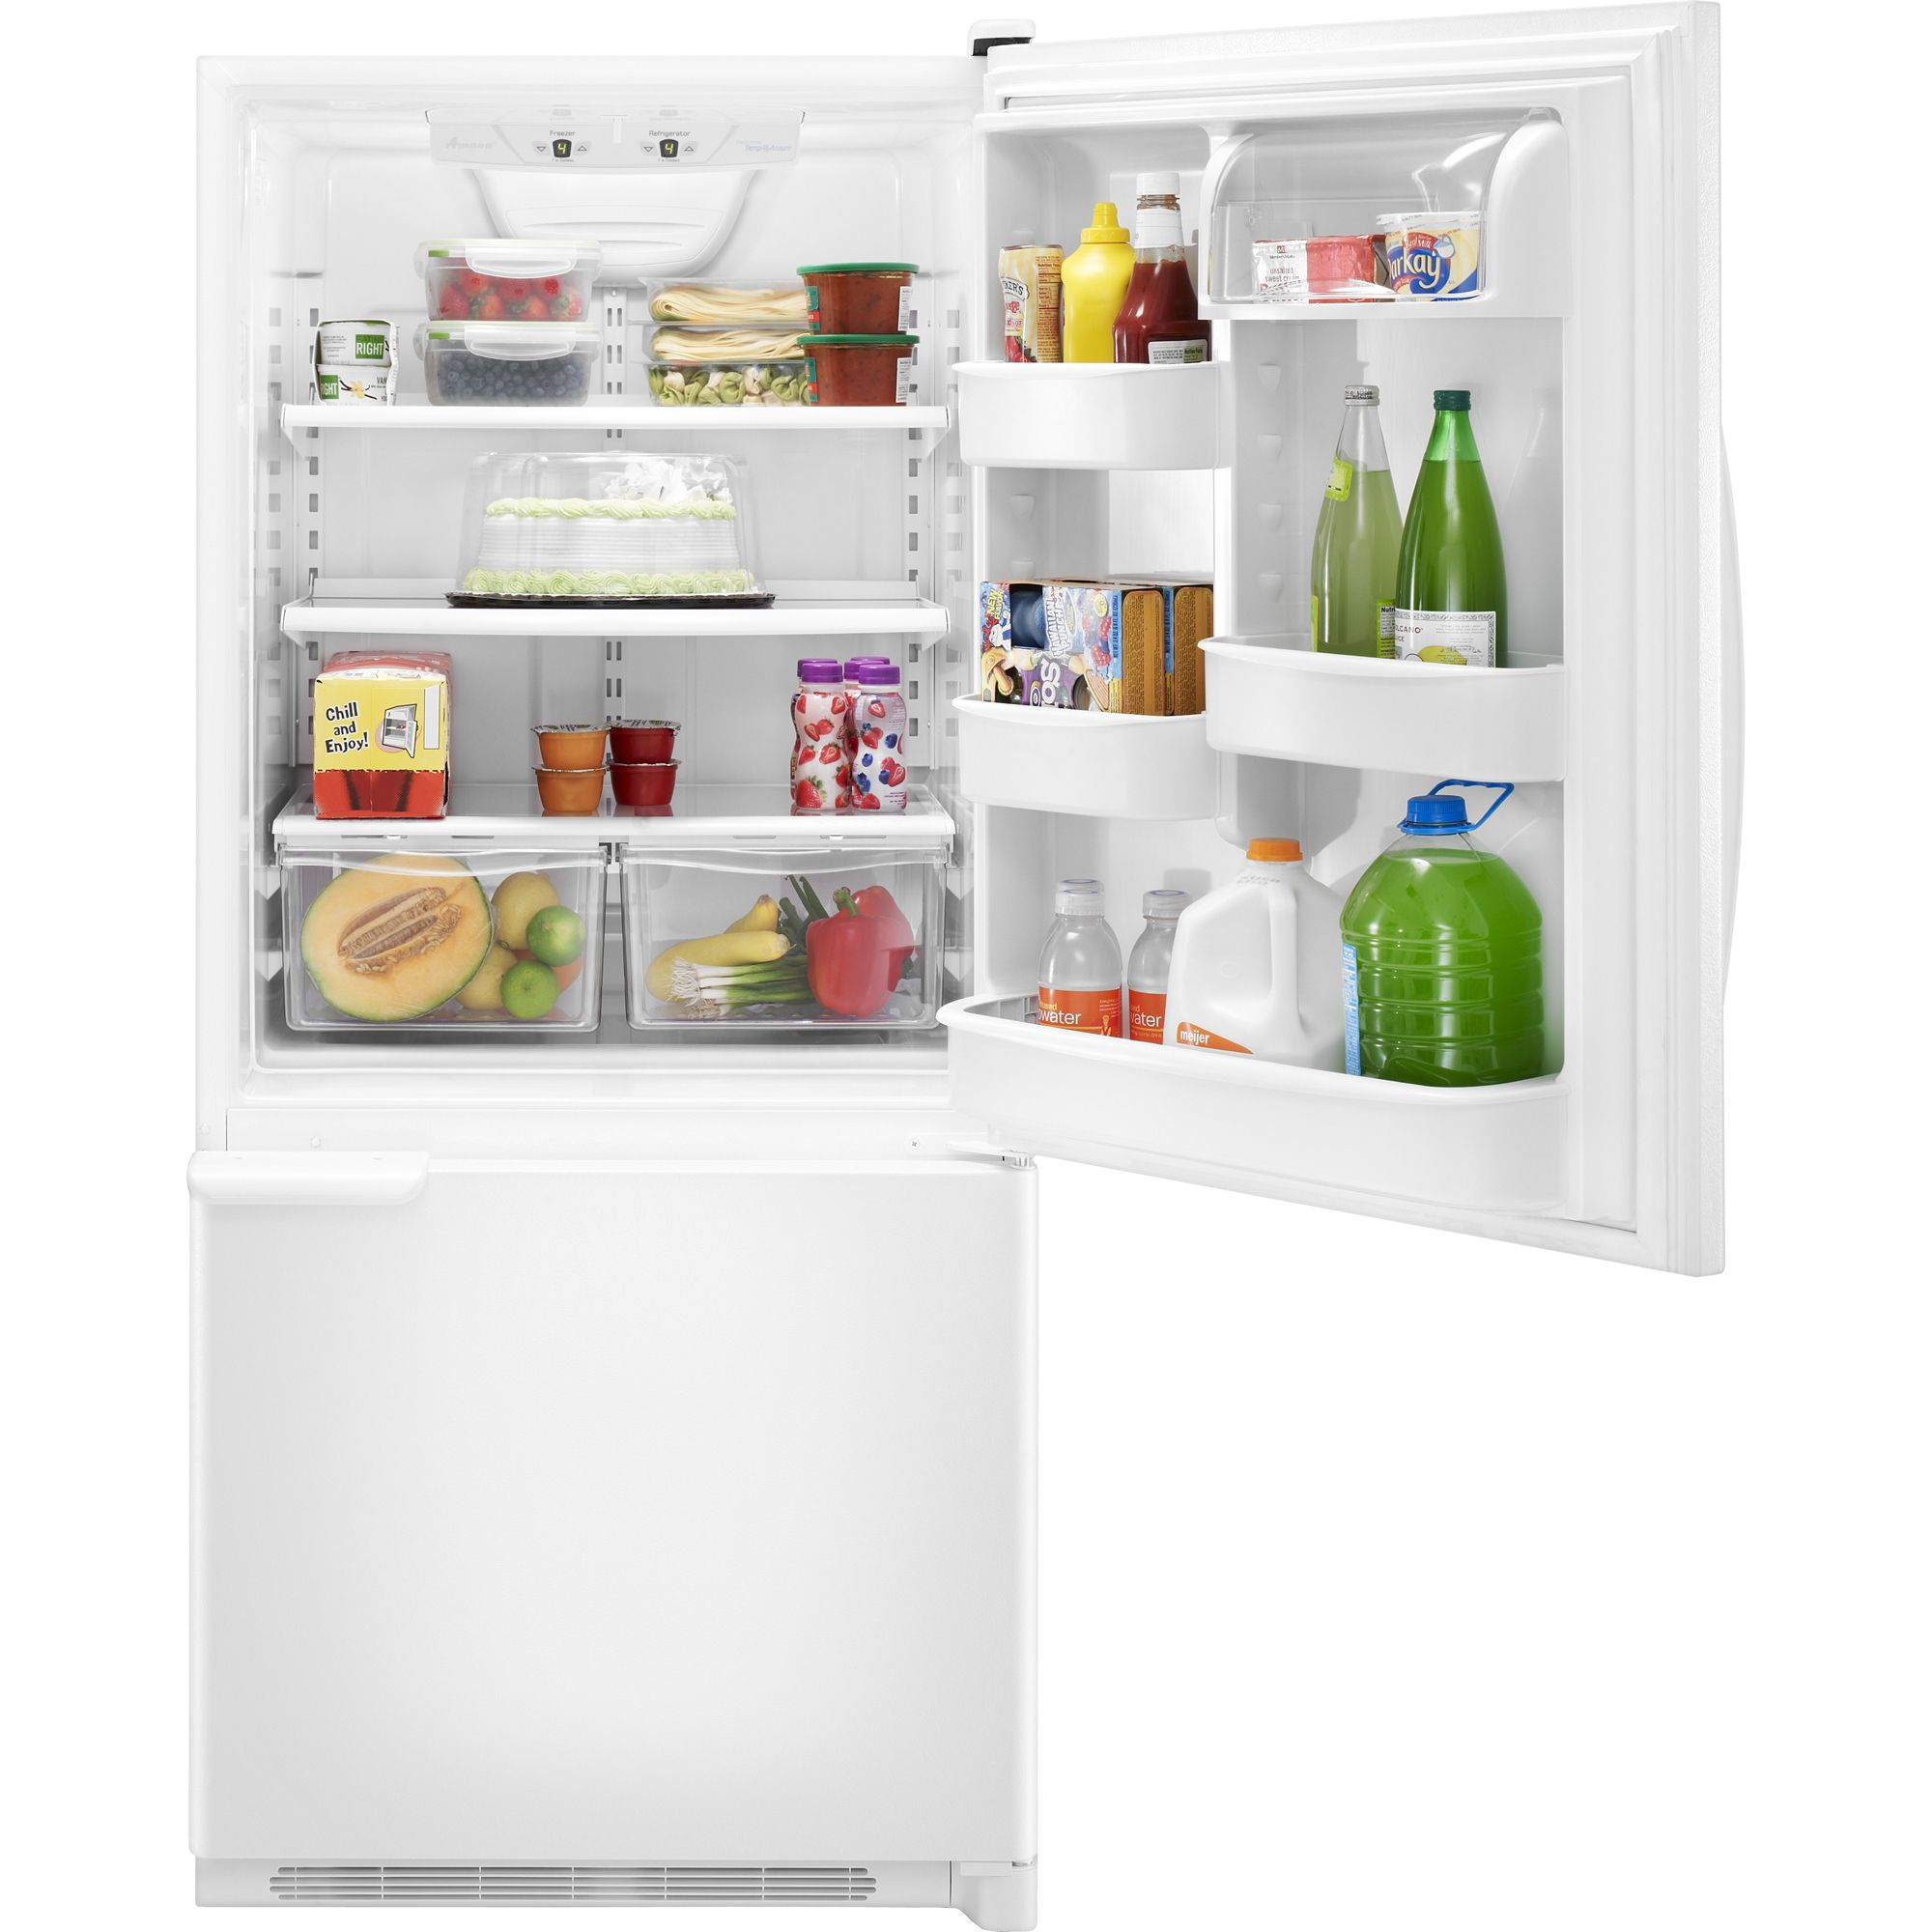 A well-known brand WHIRLPOOL   18.5 cu. ft. Single-Door Bottom-Freezer Refrigerator - White